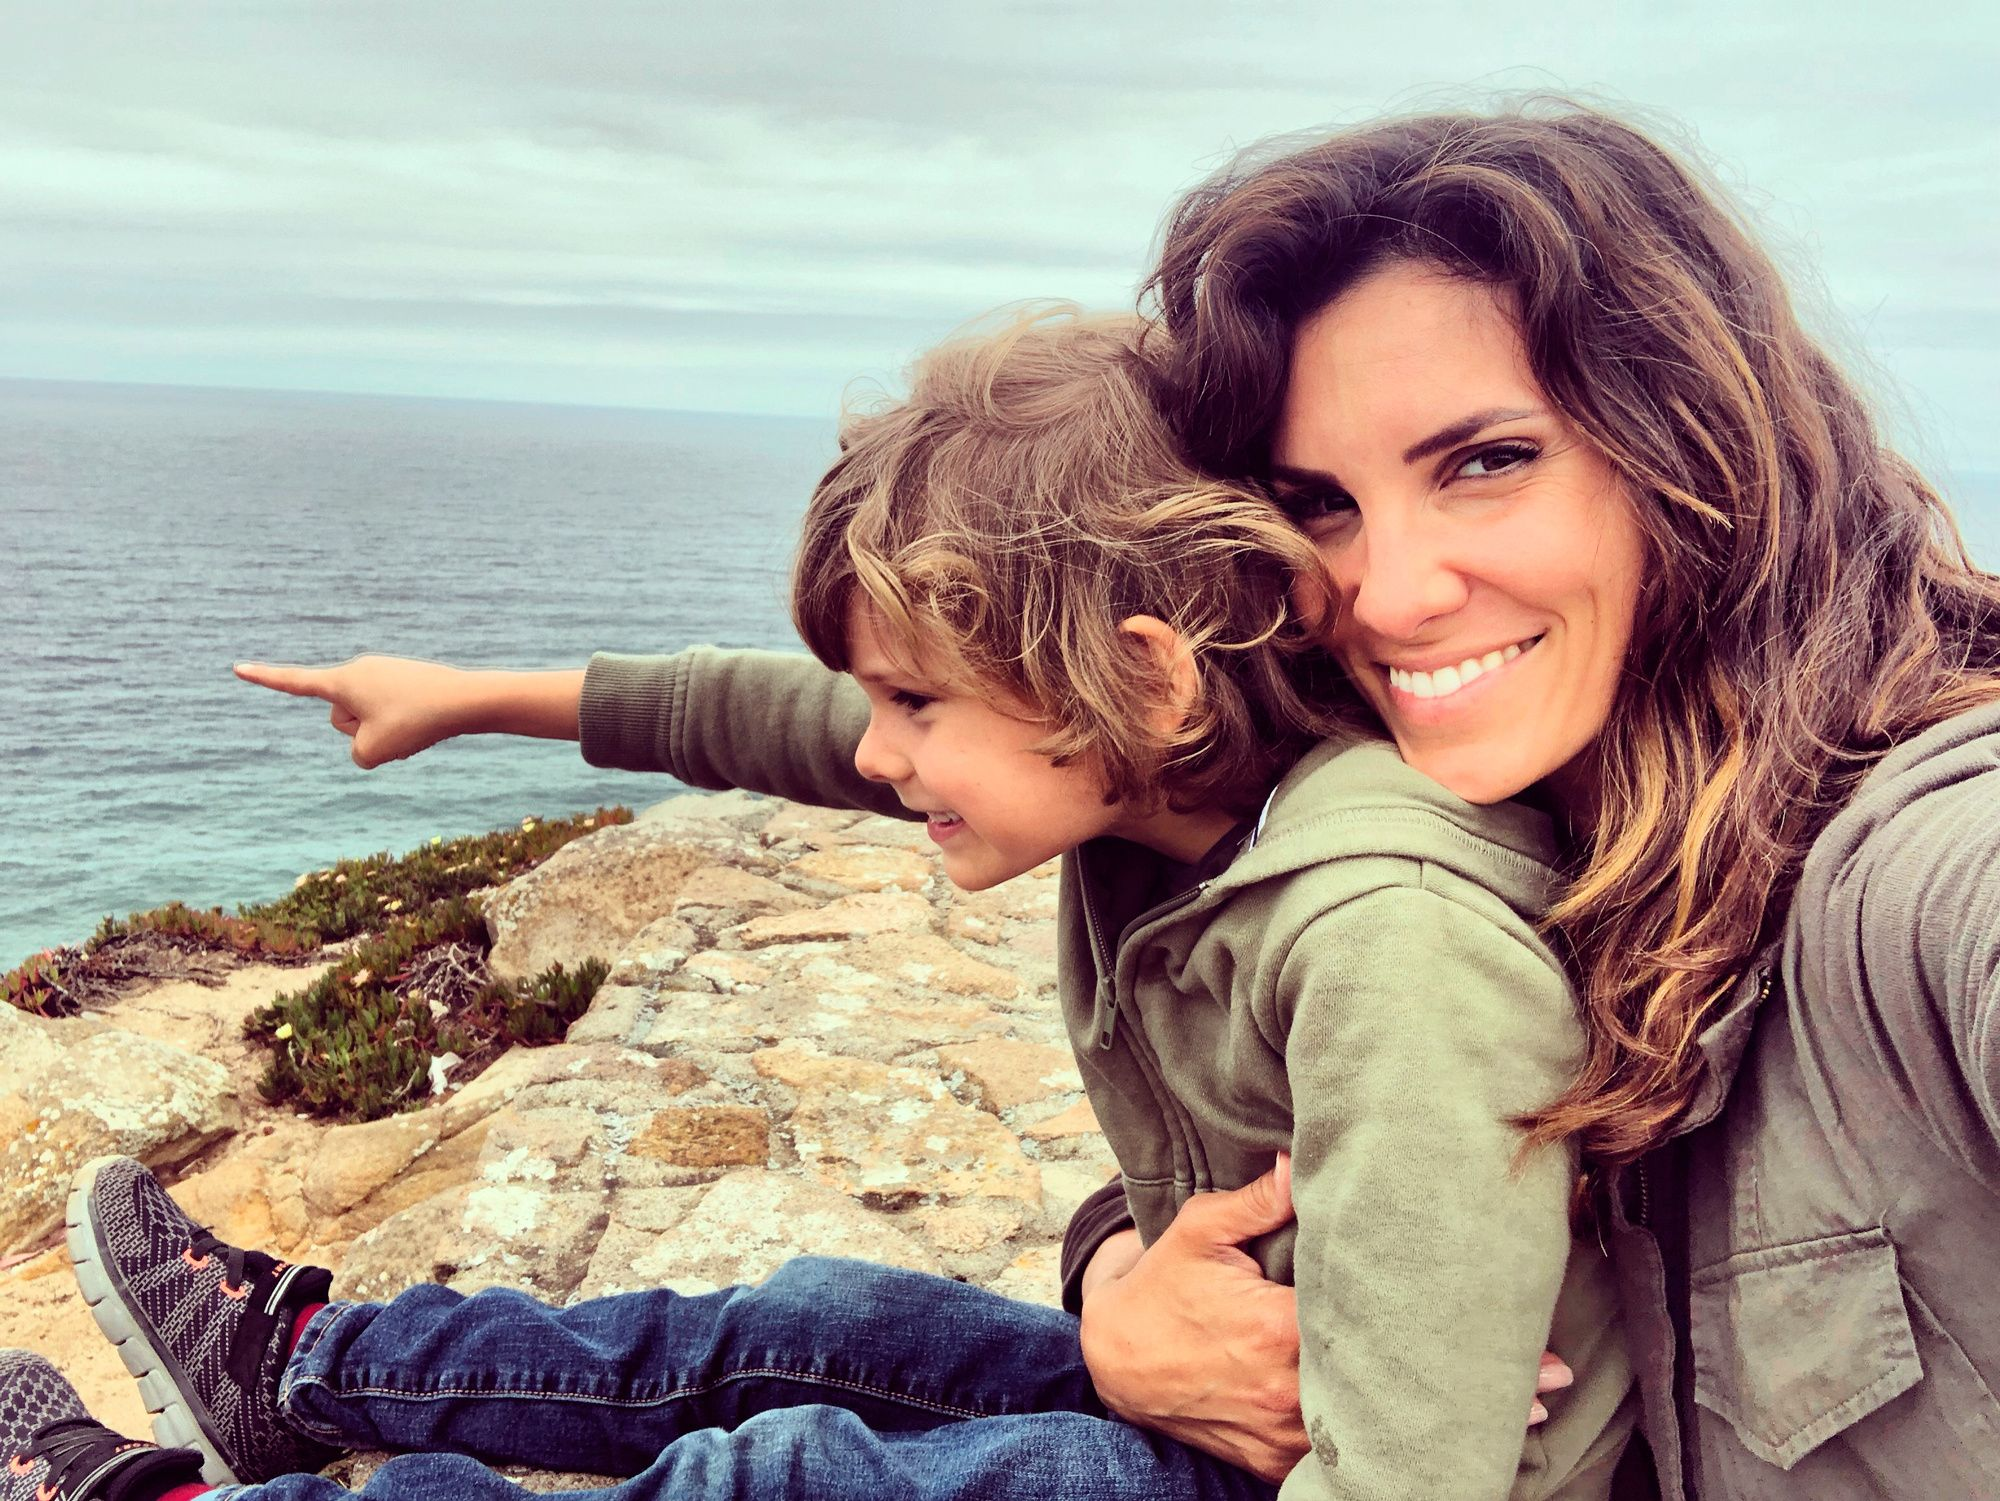 Daniela Ruah and her son by the seaside.